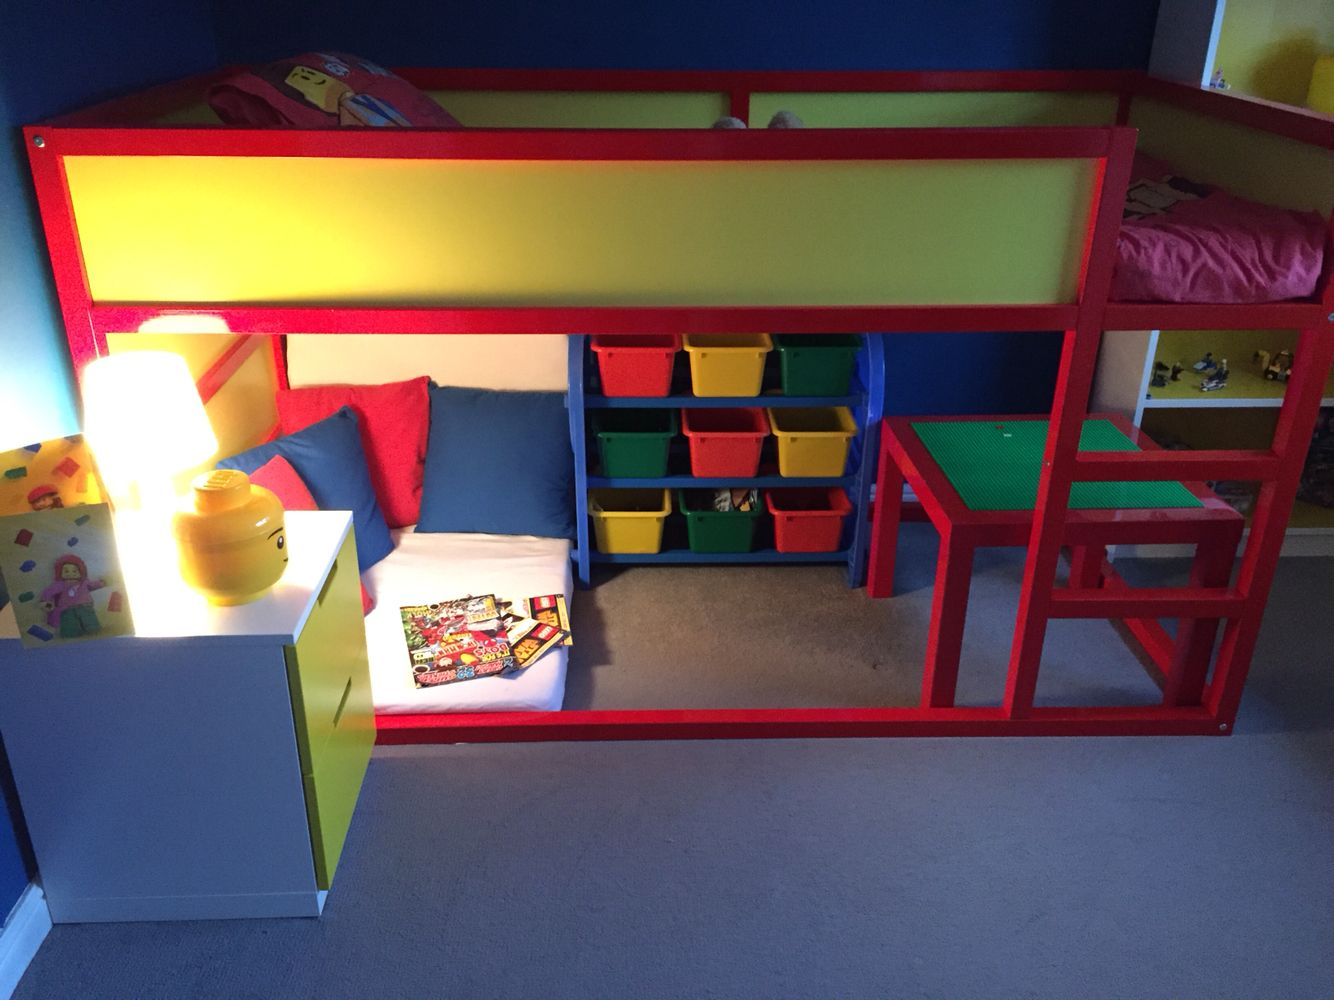 Ikea Platform Bed Hack Lego Bedroom Completed Ikea Kura Bed Hack Milo S Room